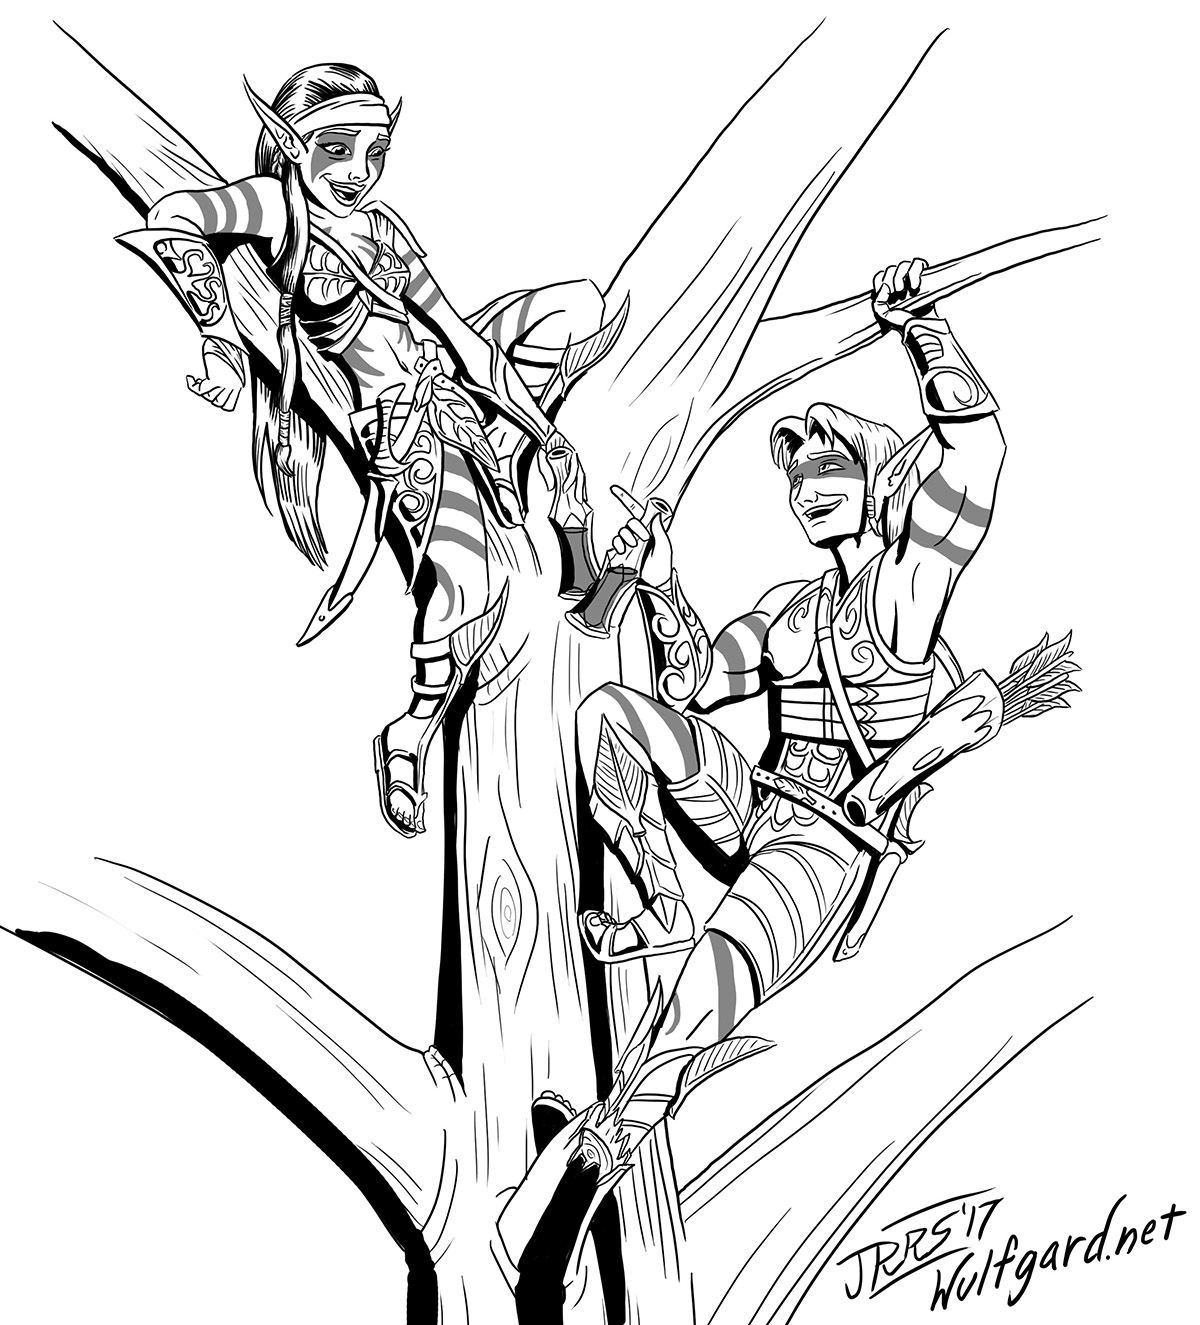 inktober__wood_elves_by_saber_scorpion-d